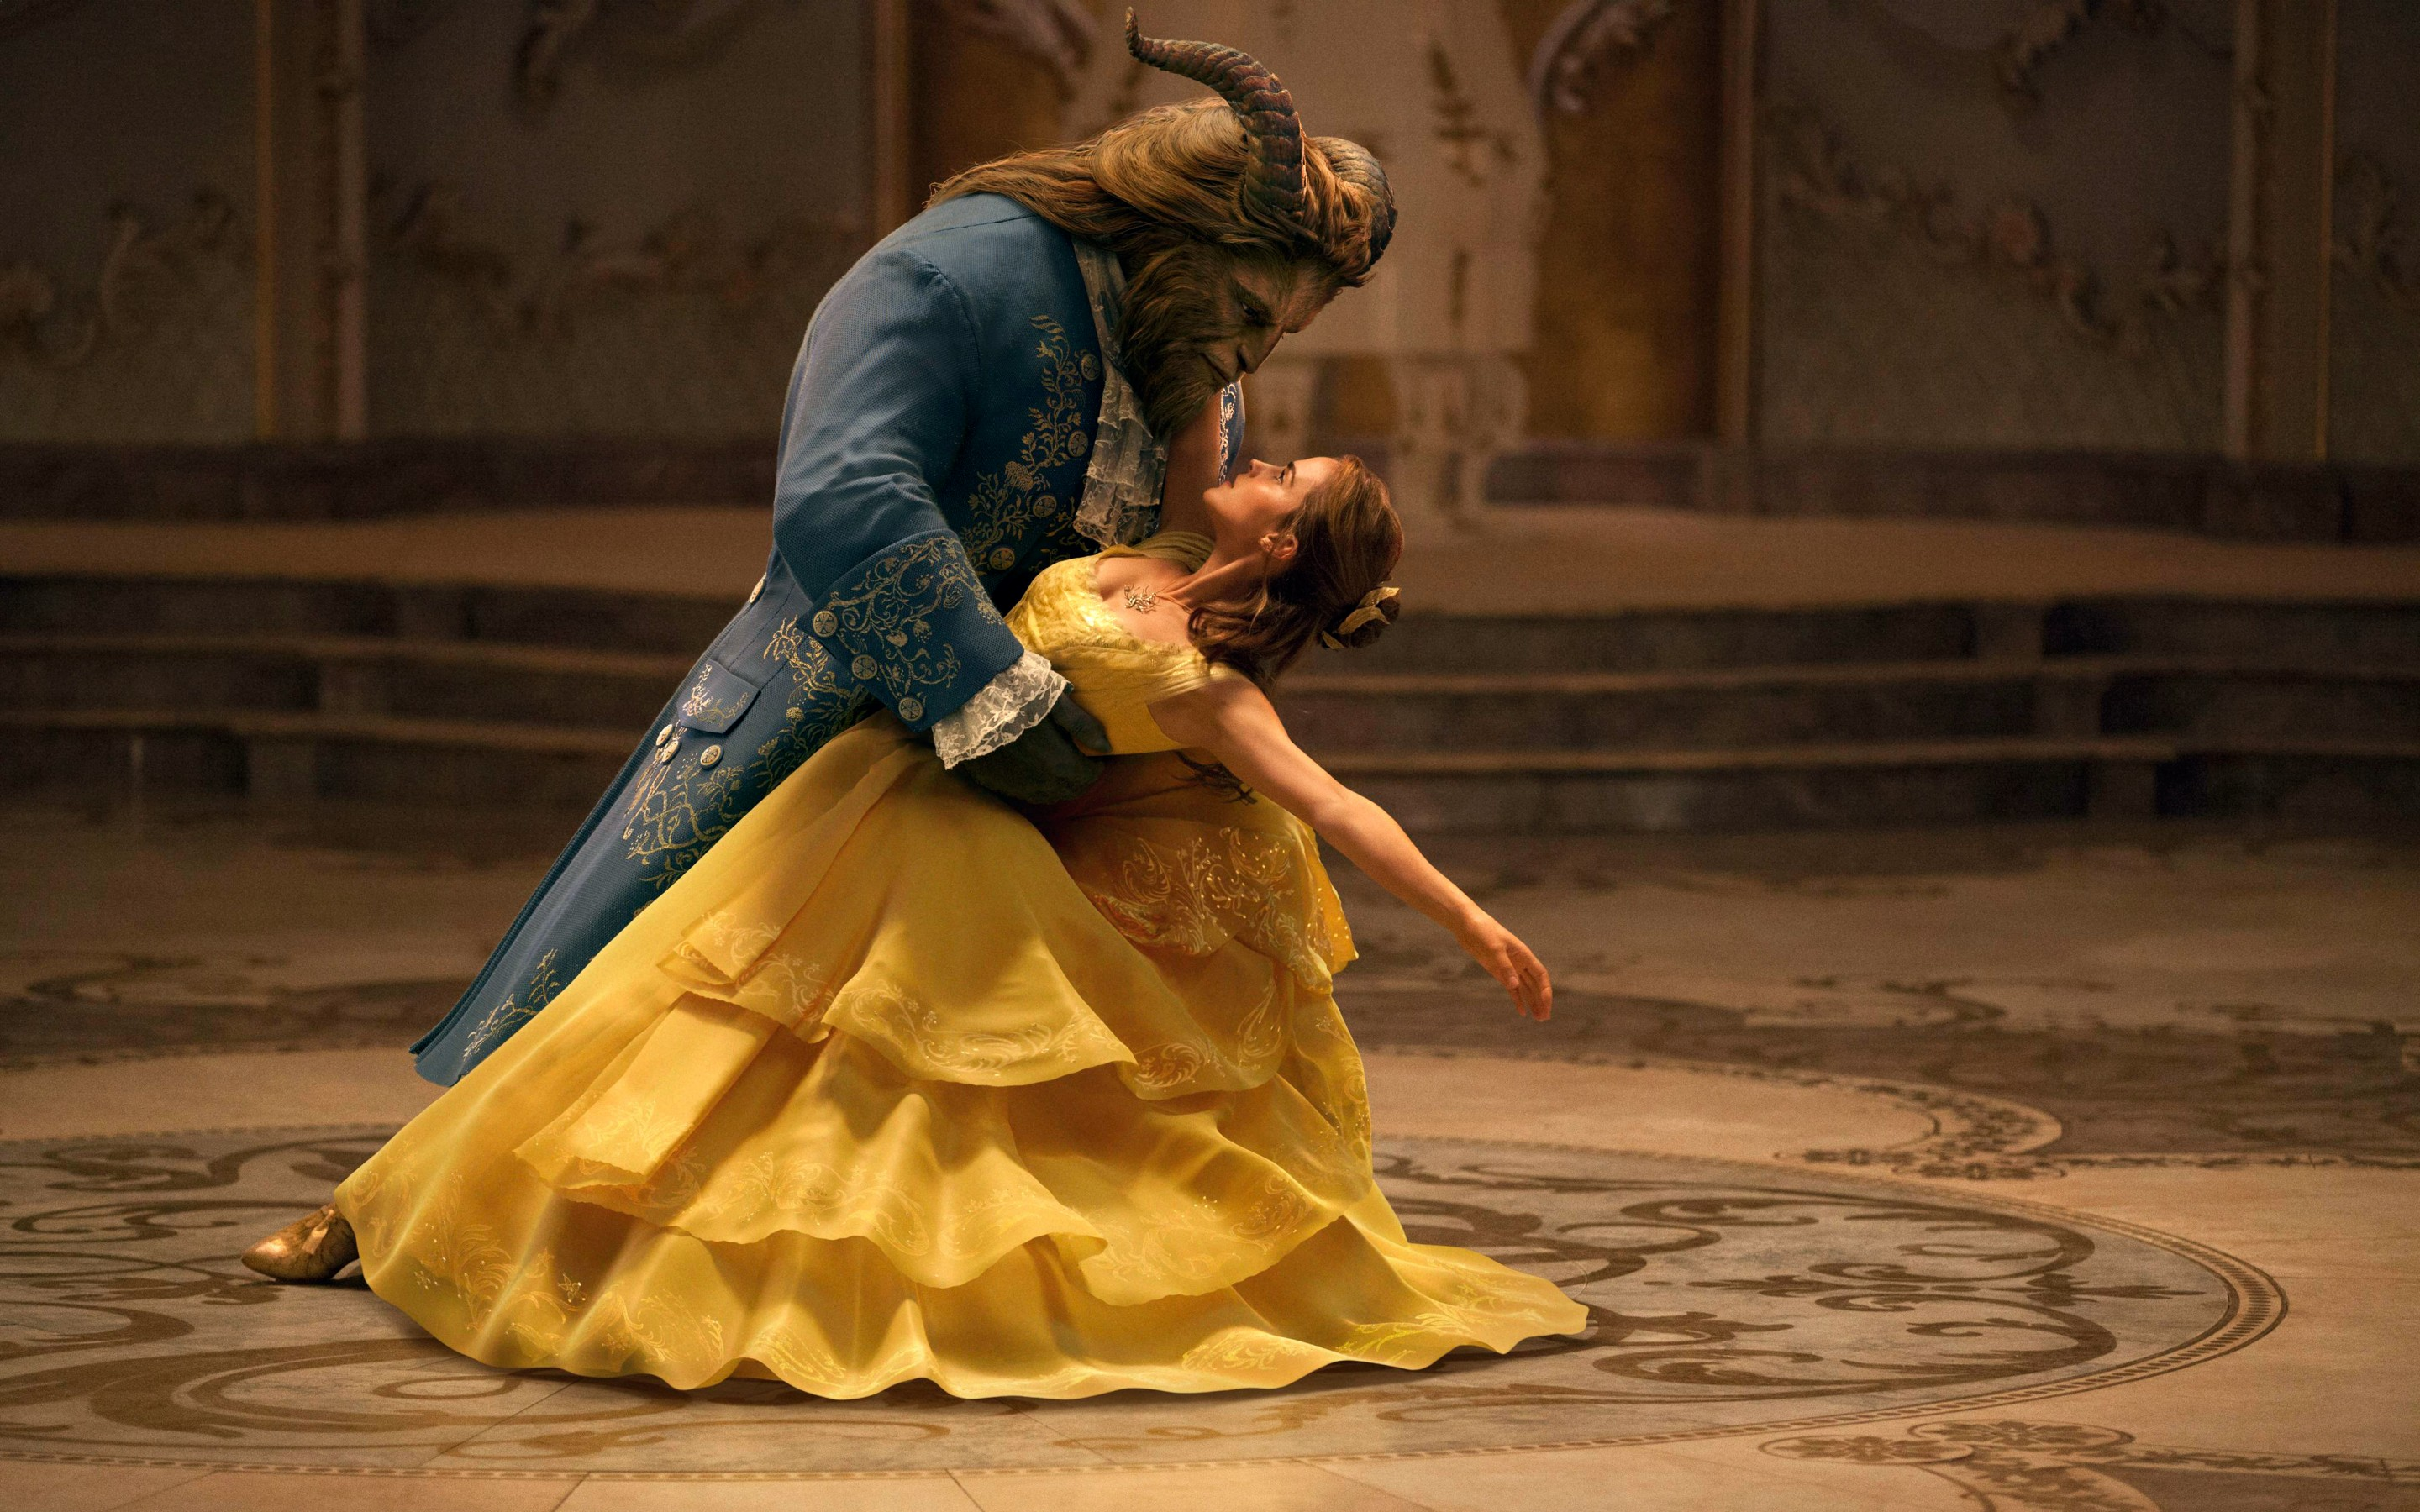 Popular Wallpaper High Resolution Movie - 2017-beauty-and-the-beast-movie-wallpaper-4k-2880x1800  Picture_245889.jpg